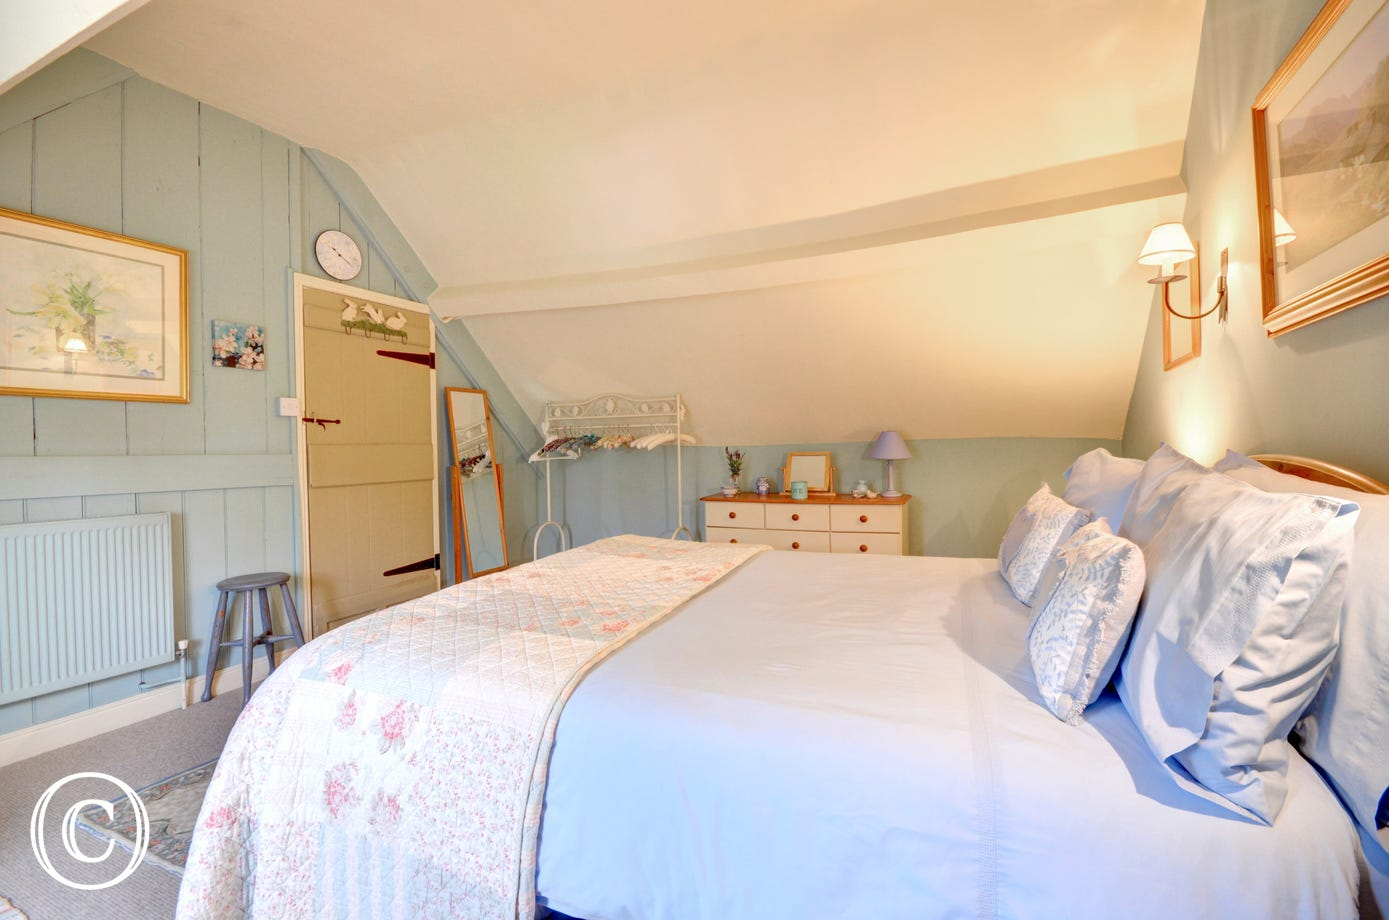 The master bedroom has been tastefully decorated in a country style.